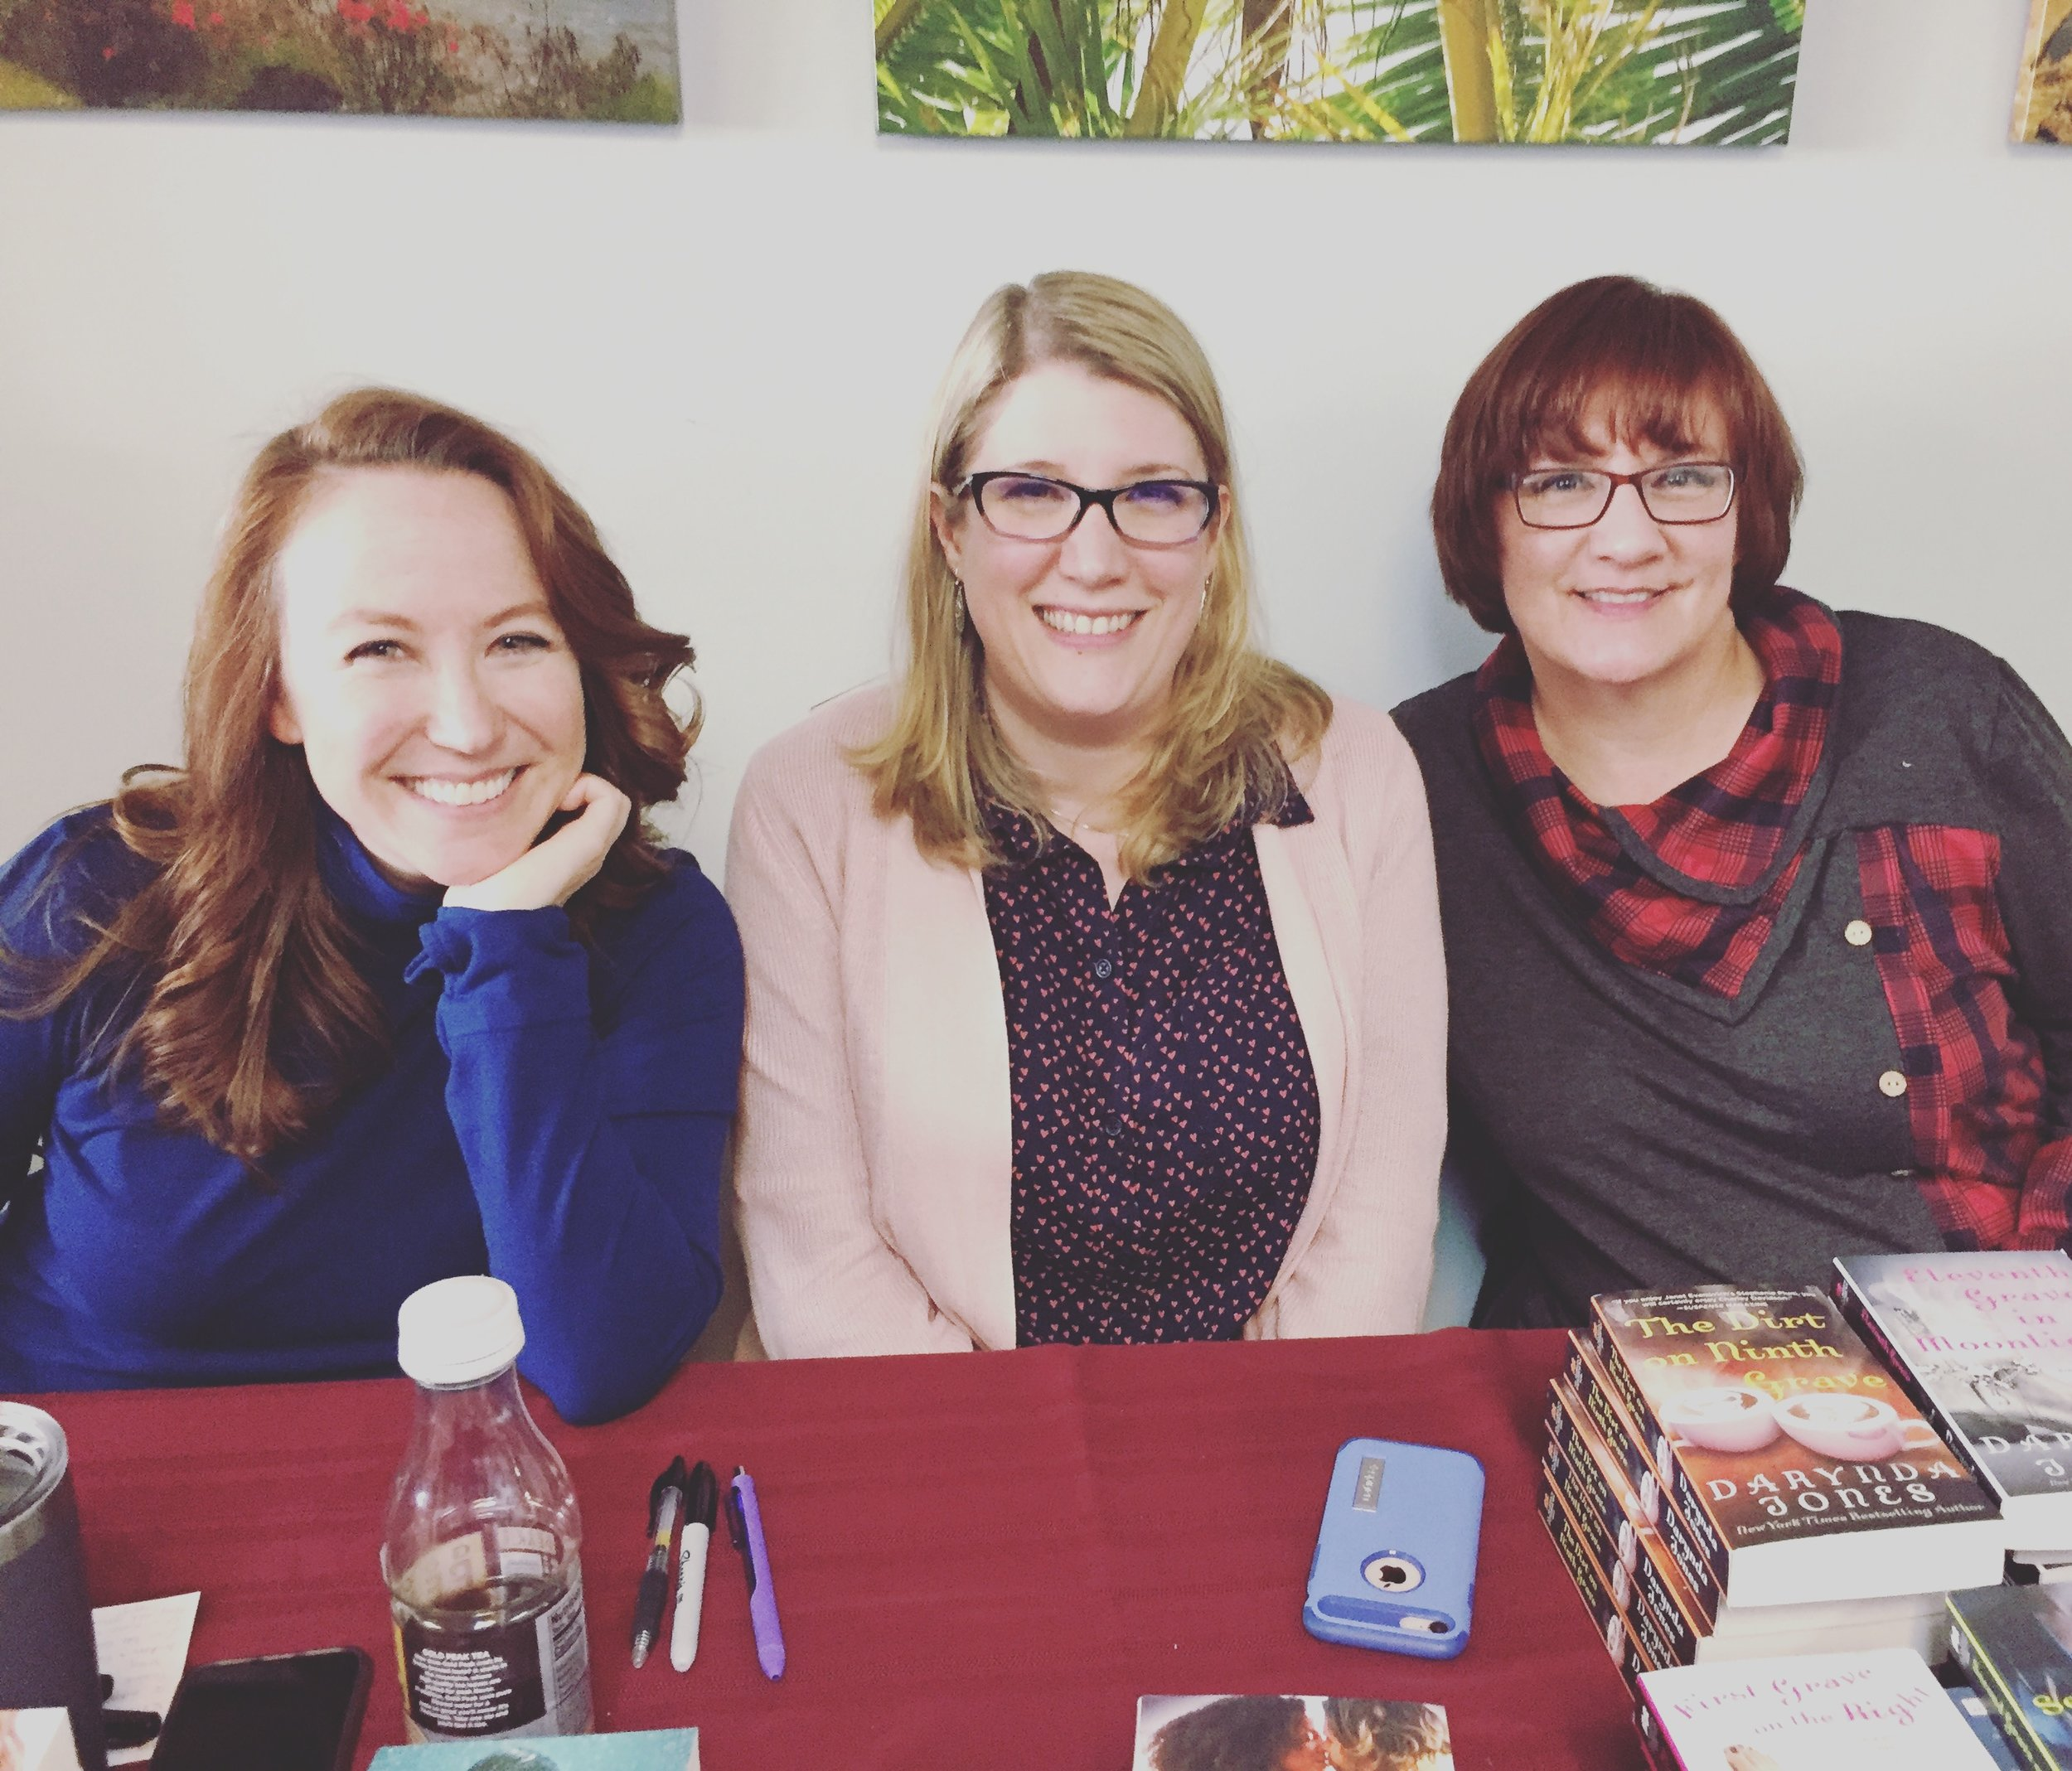 My signing buddies authors Lucy Score and Darynda Jones